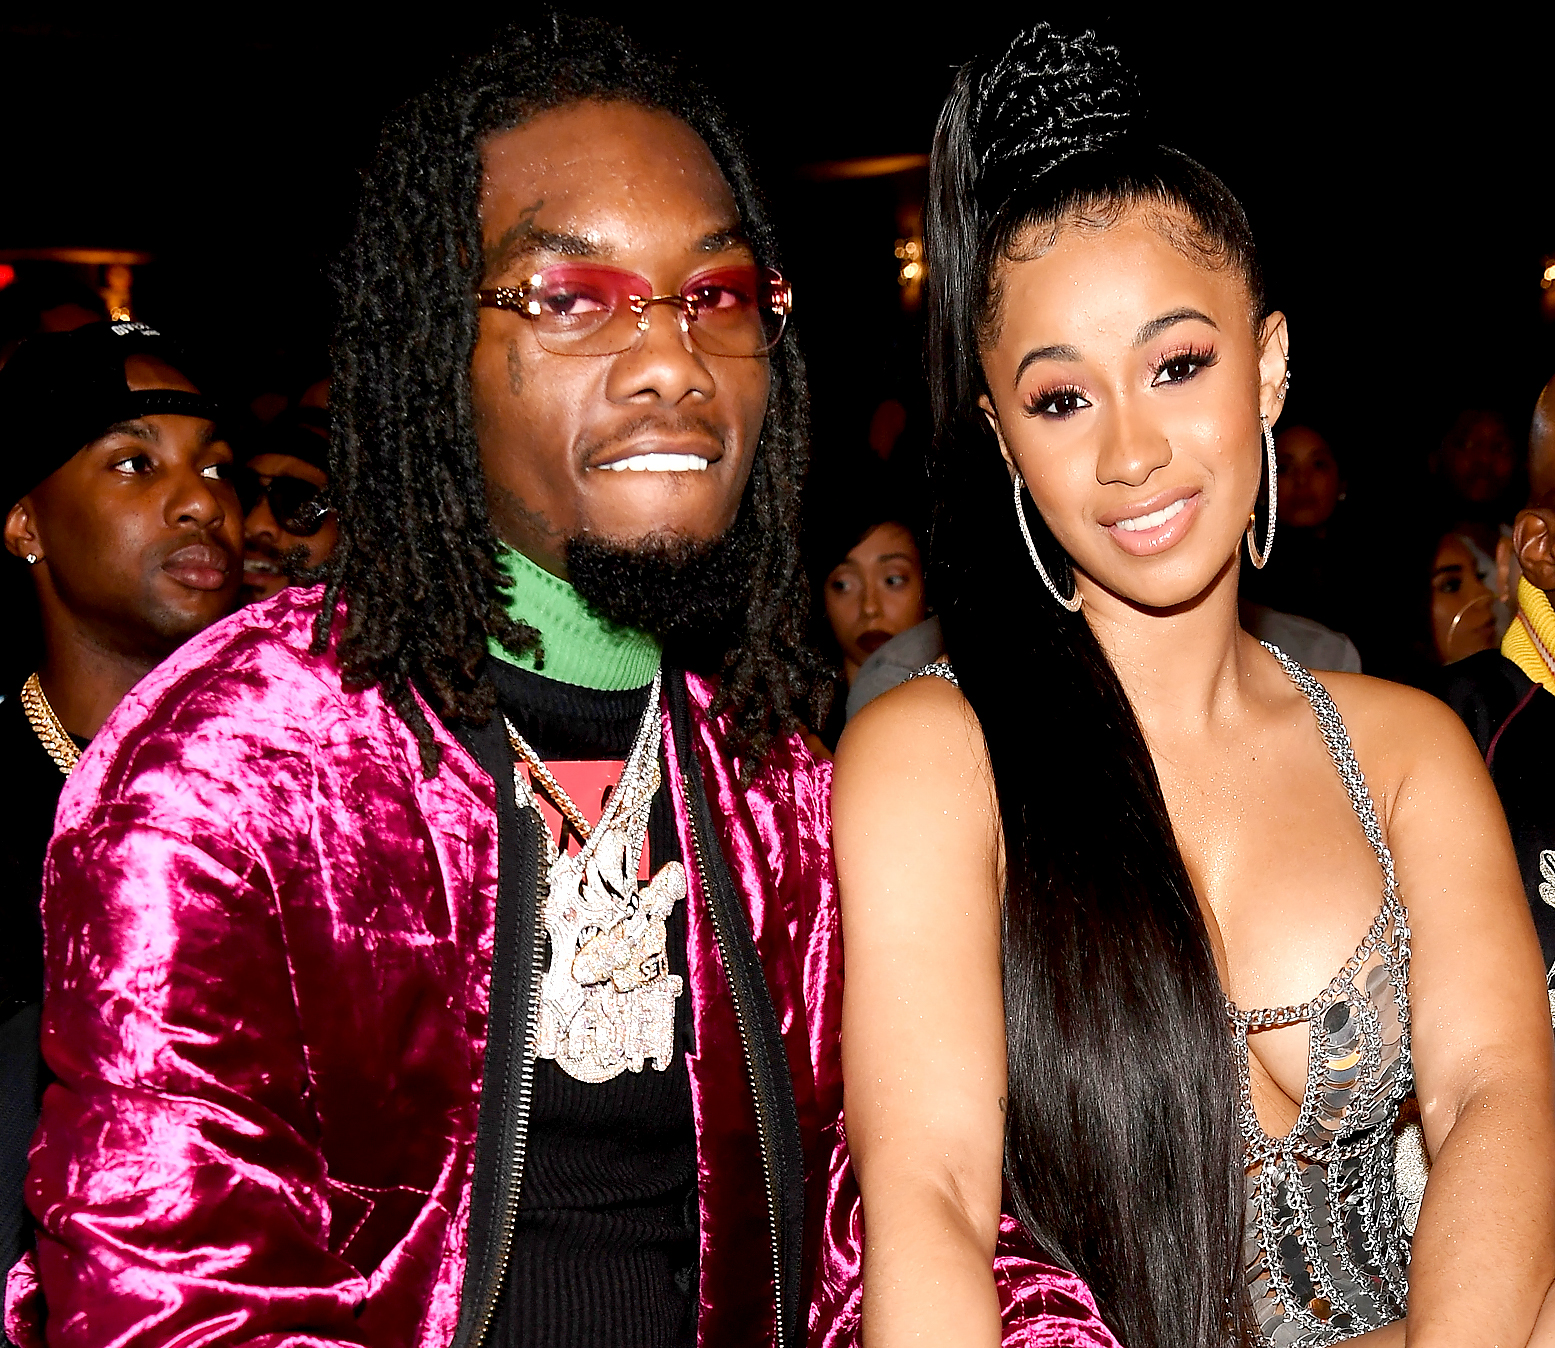 Migos Offset Husband Of Cardi B Arrested On Felony Gun: Details Of Migos Offset's Kids And His Relationship With